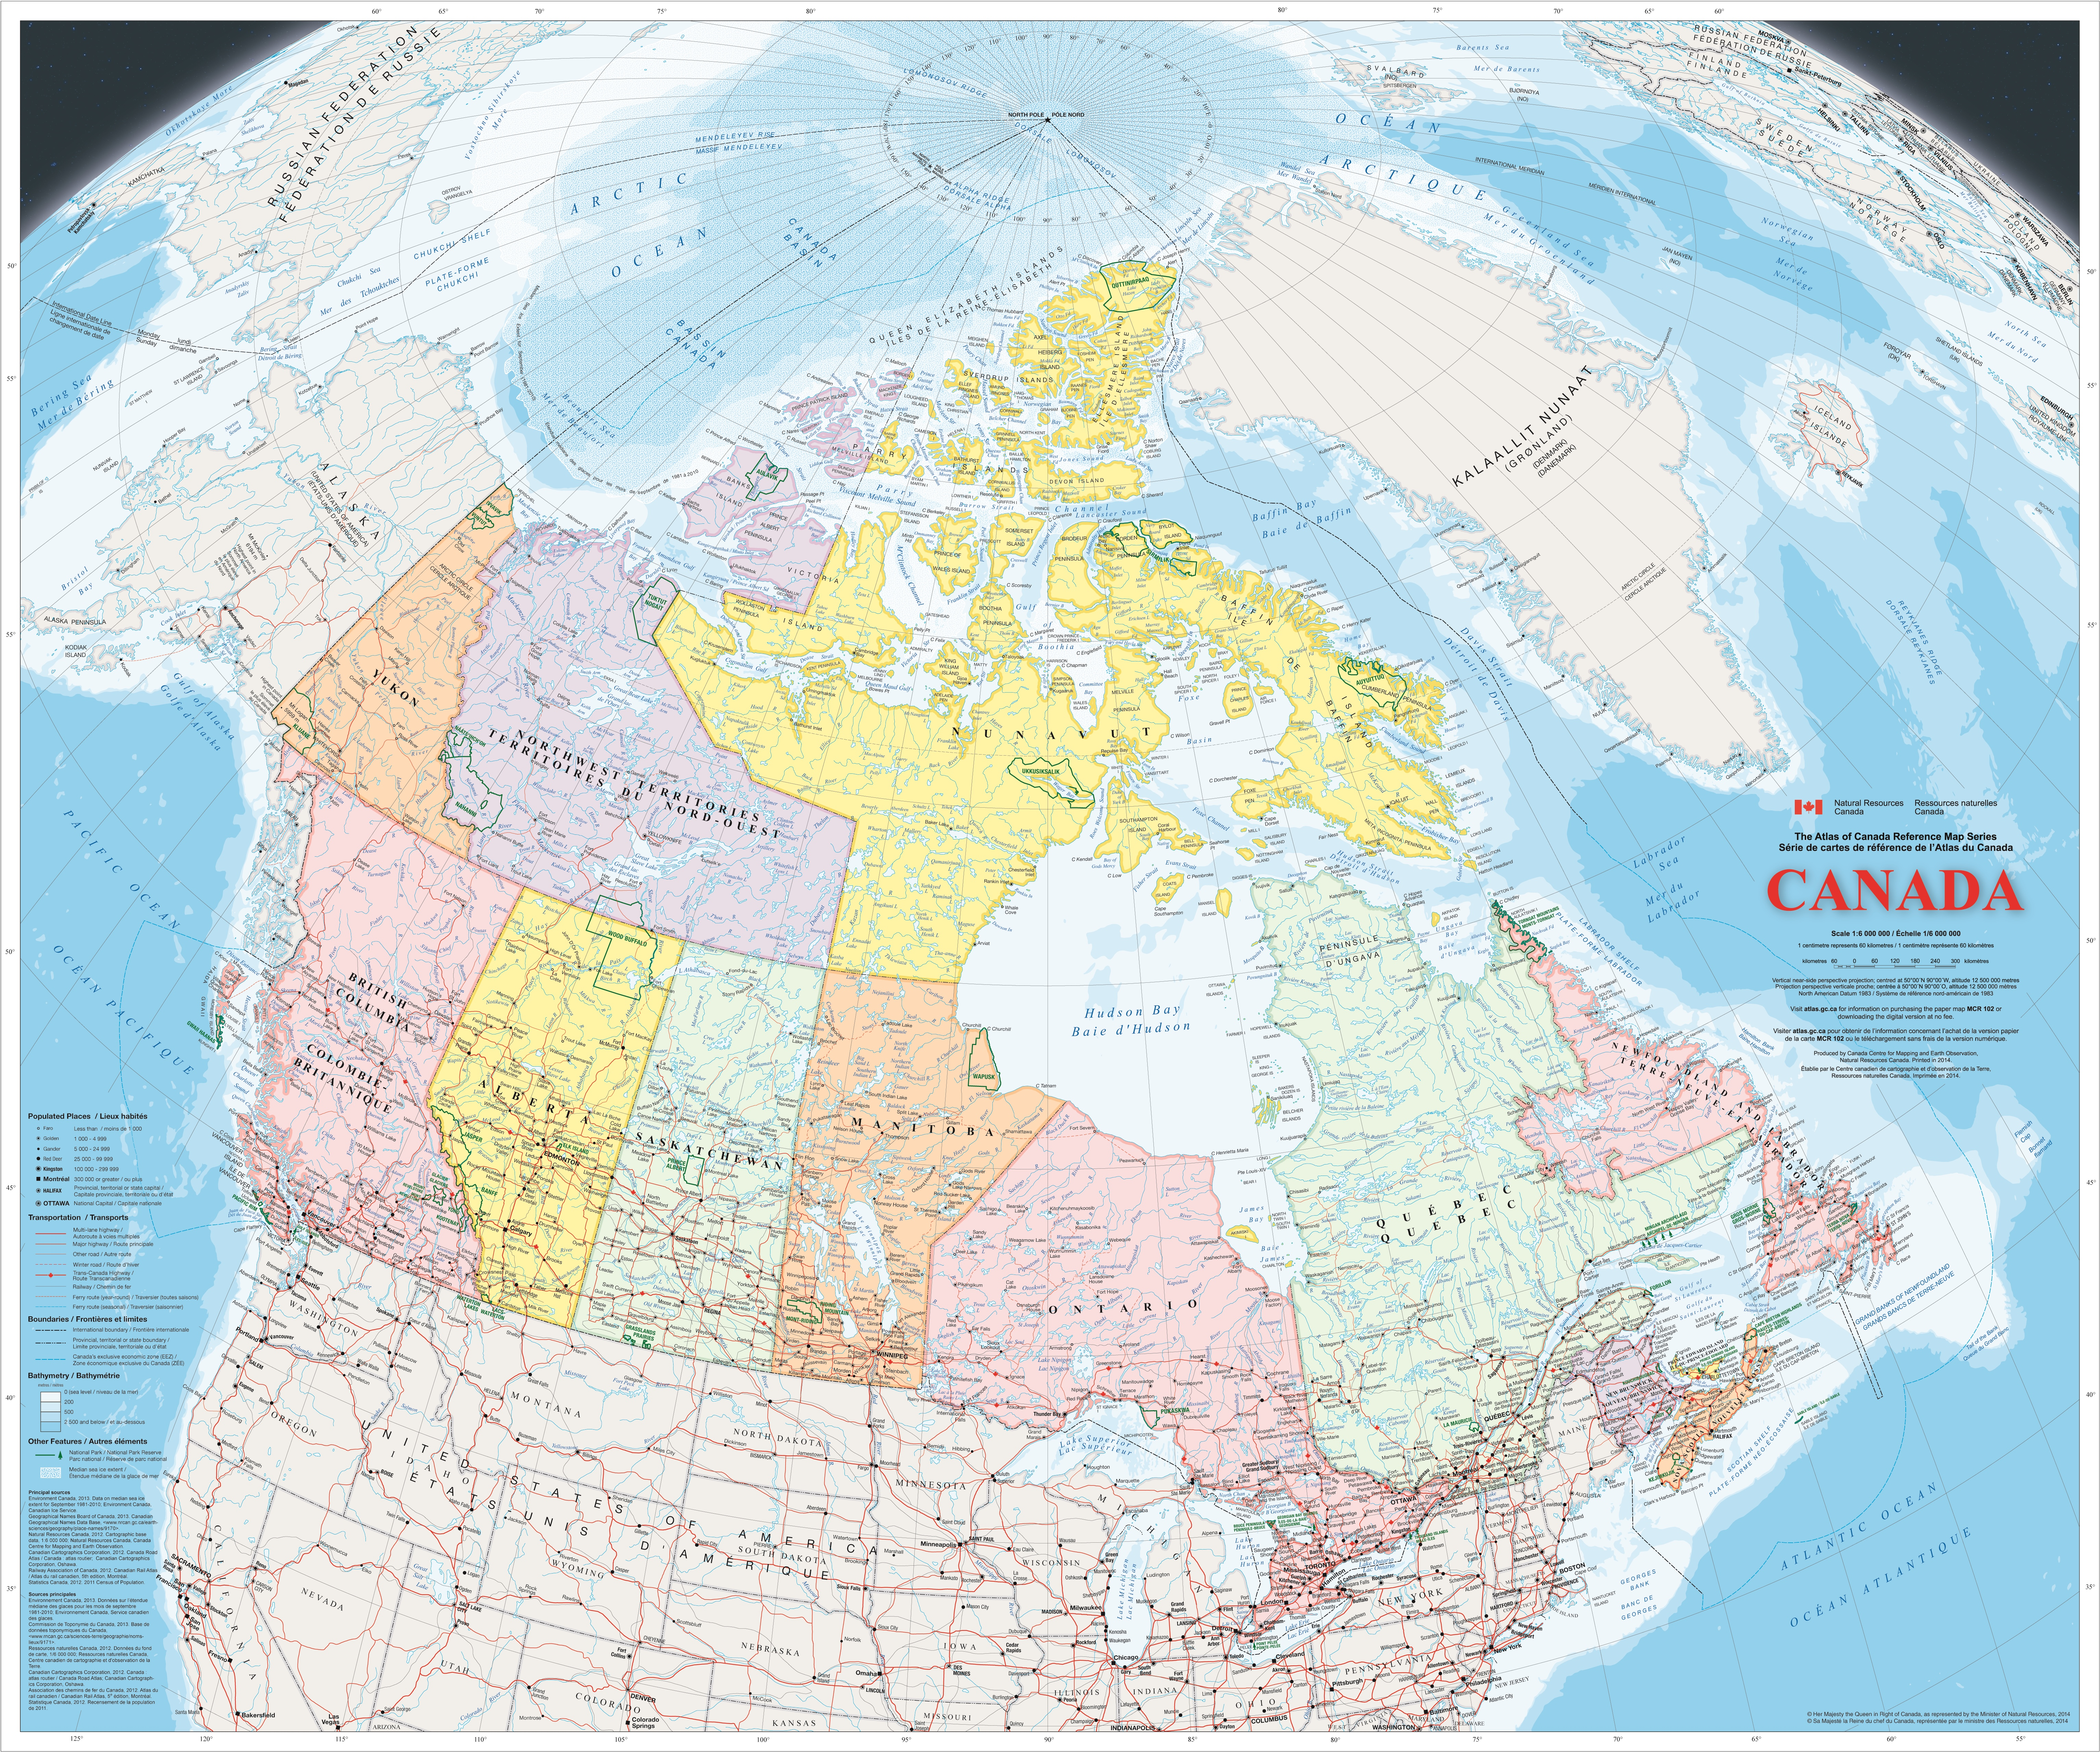 Map Of Canada With Cities Large detailed map of Canada with cities and towns Map Of Canada With Cities